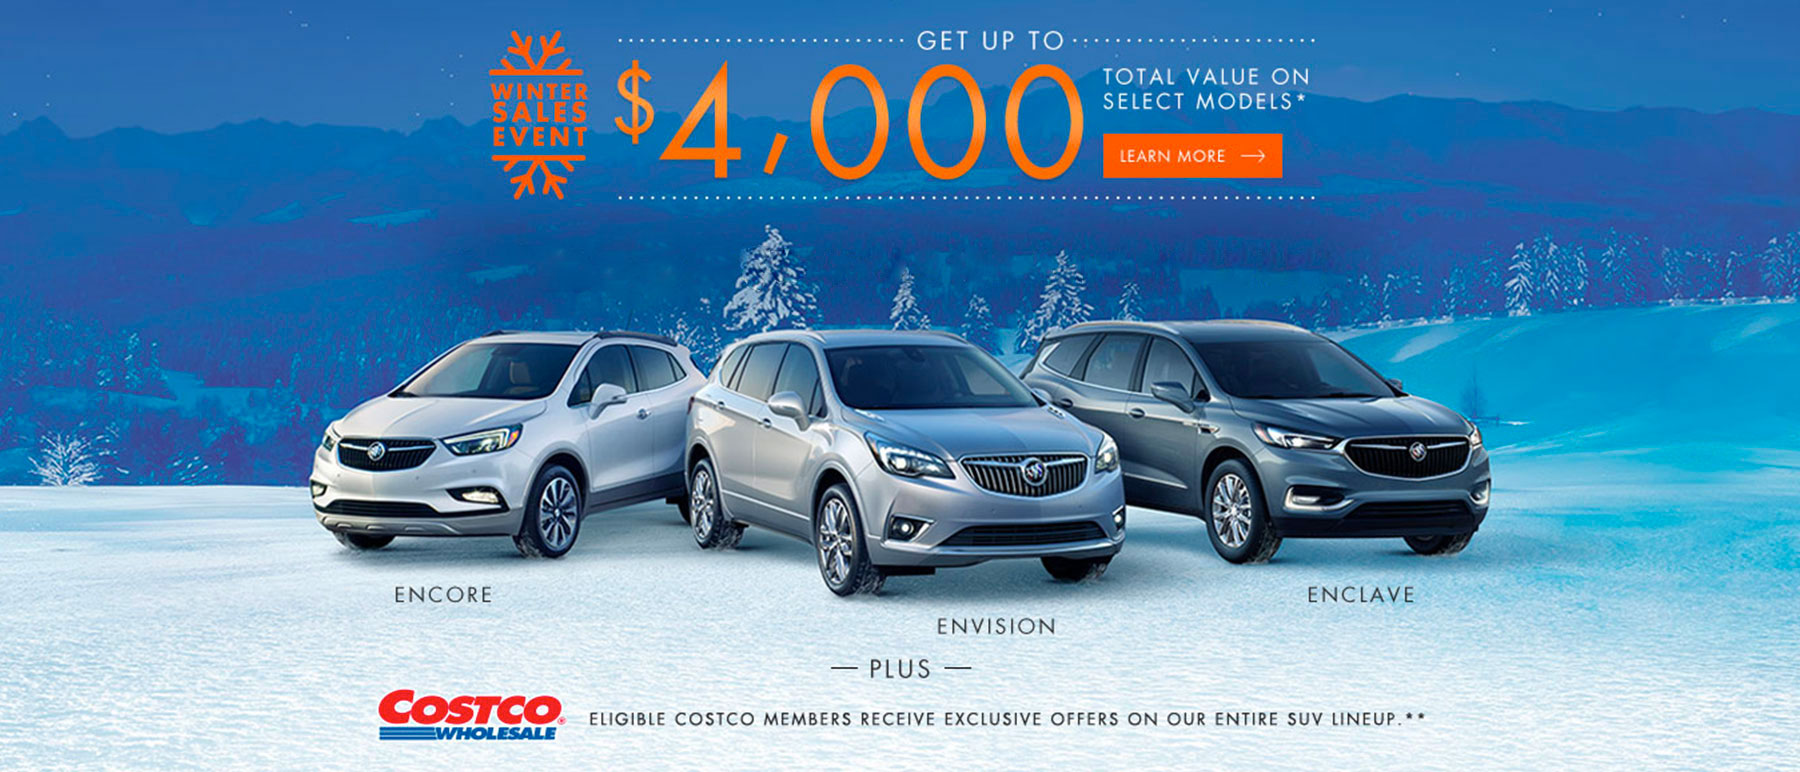 Buick March 2019 Winter Sales Event